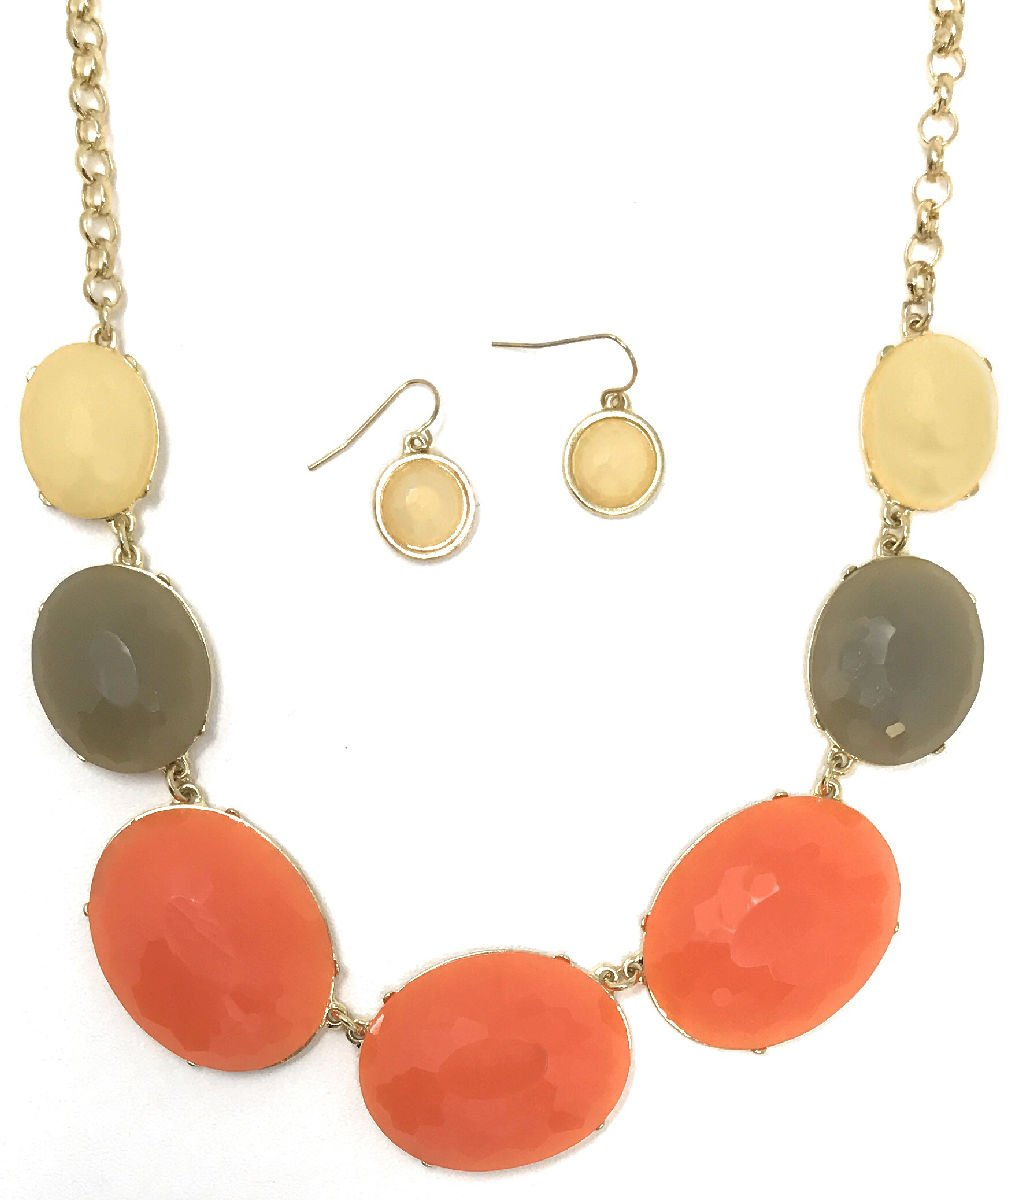 Dave's Collections Women's Fashion Bubble Bib Collar Statement Jewelry Earring Necklace Set